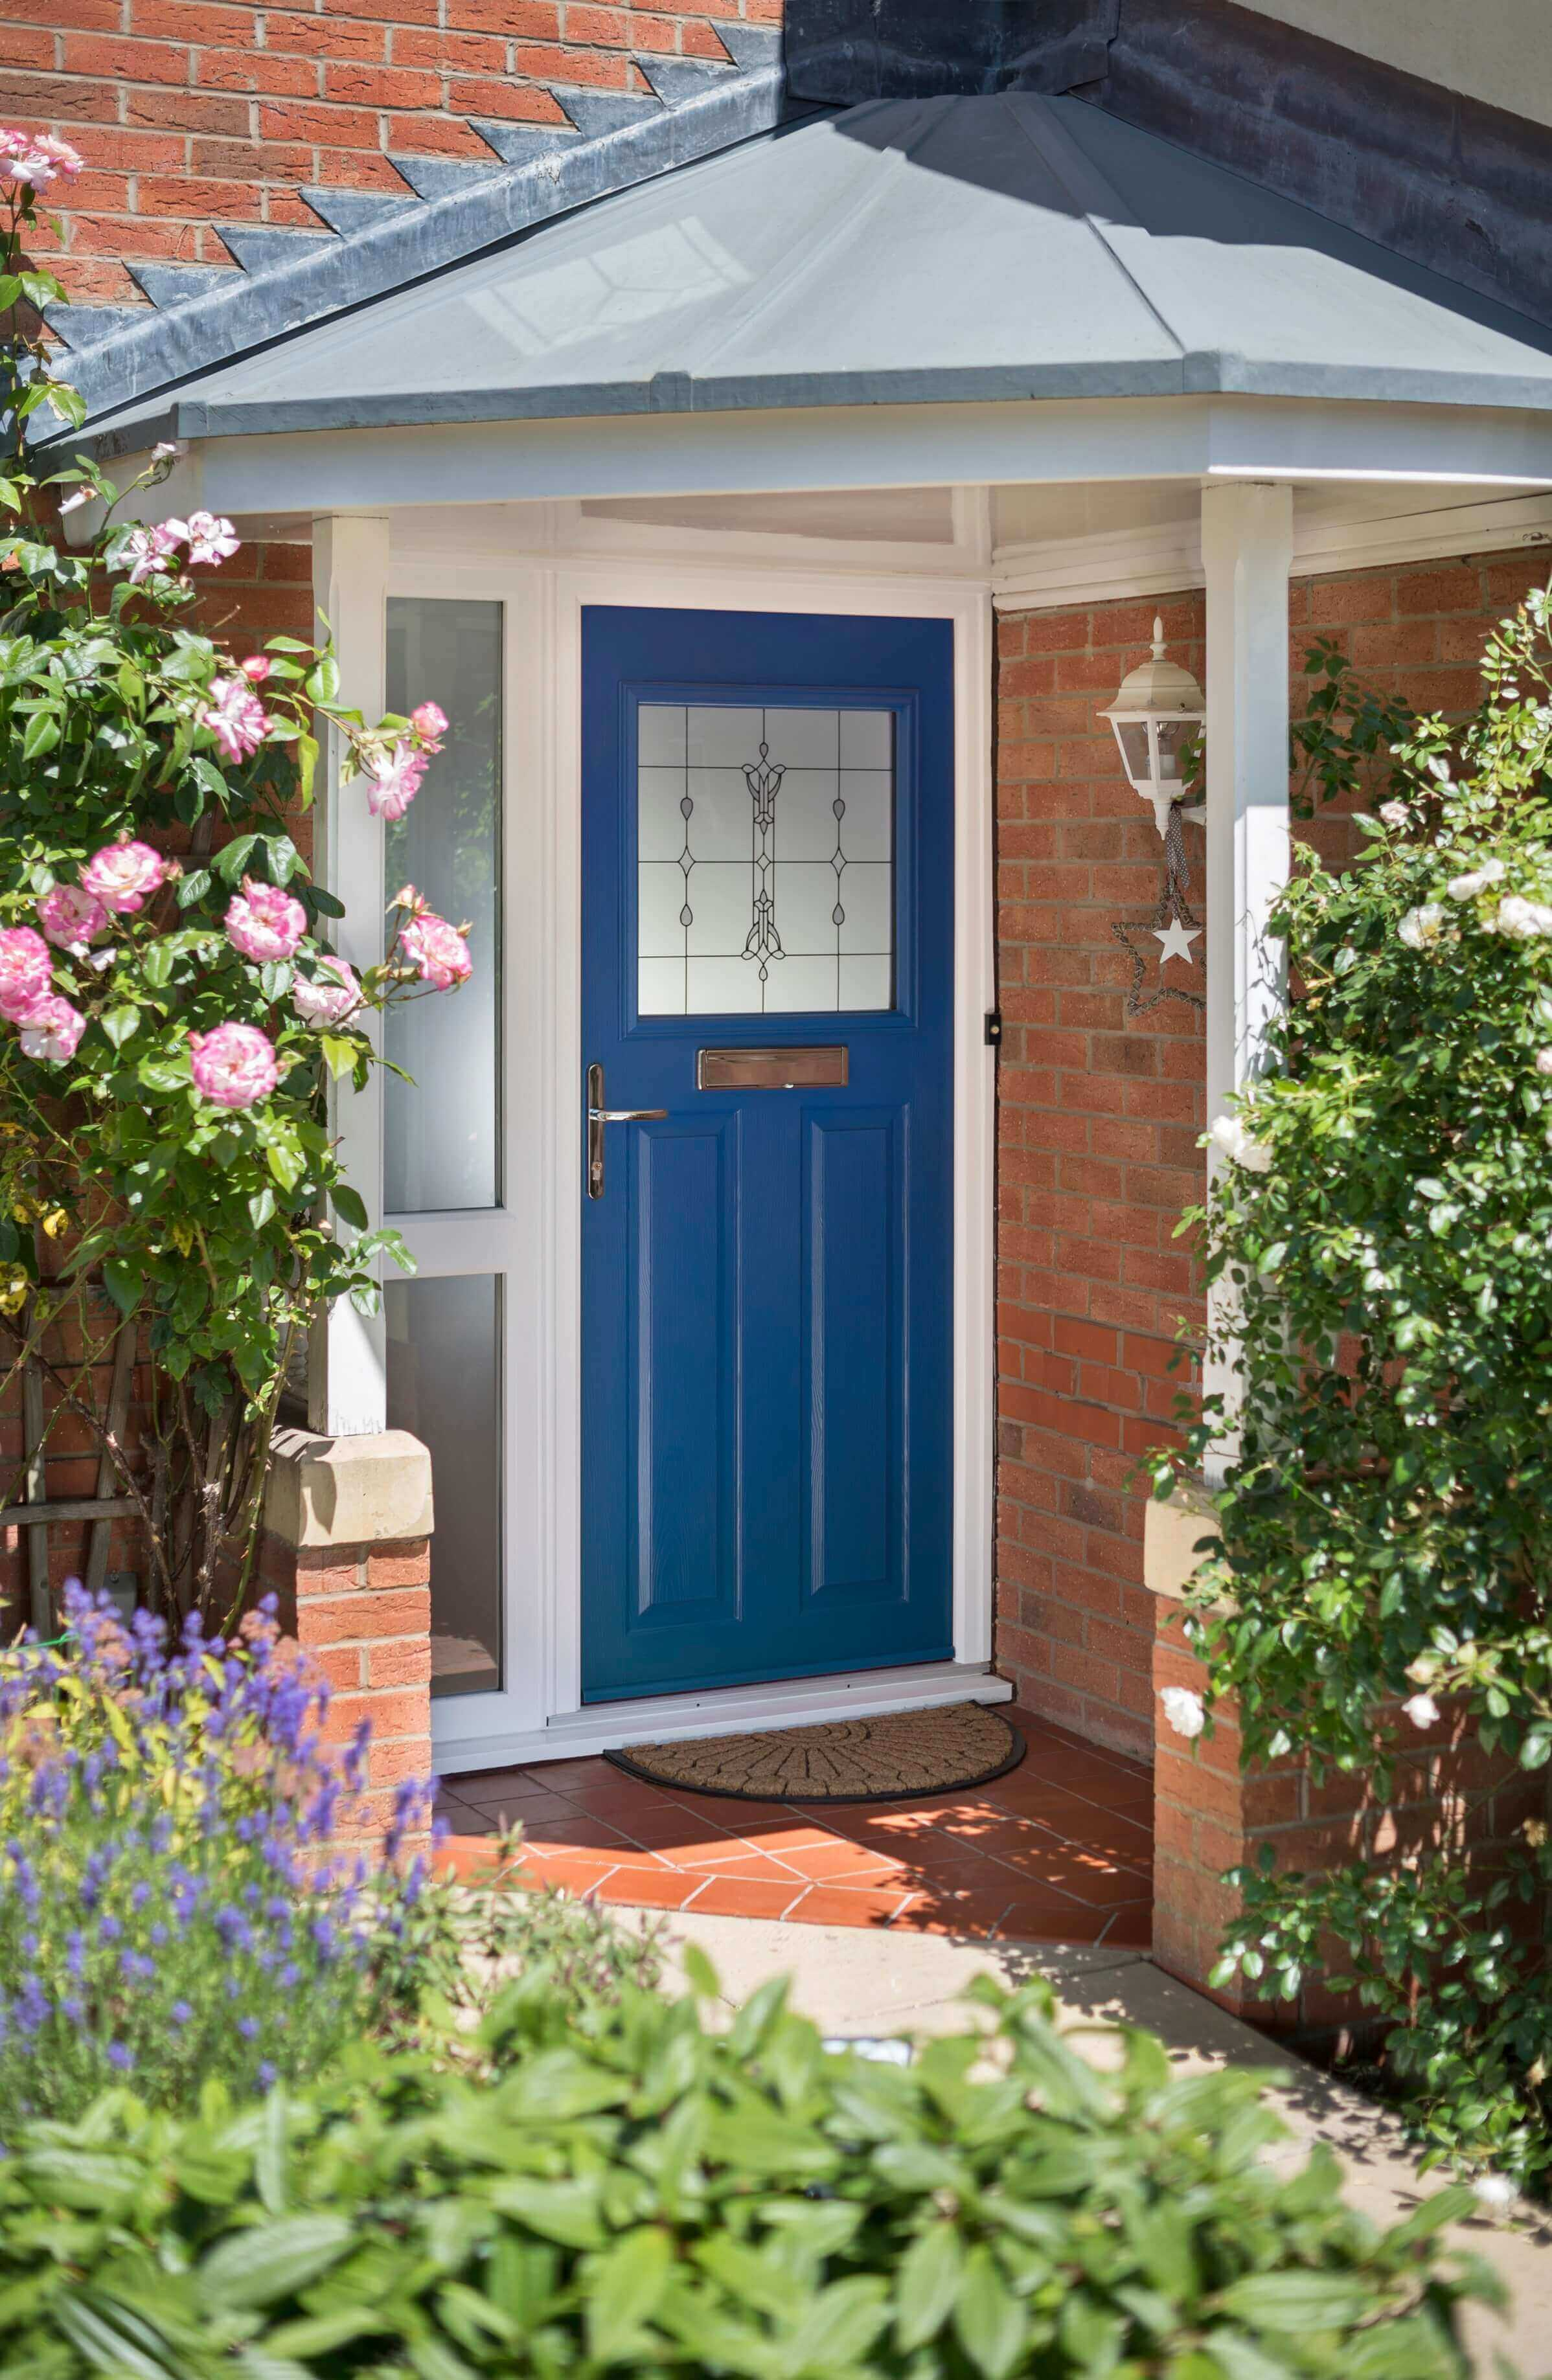 New Pastel Range and Door Designs from Solidor